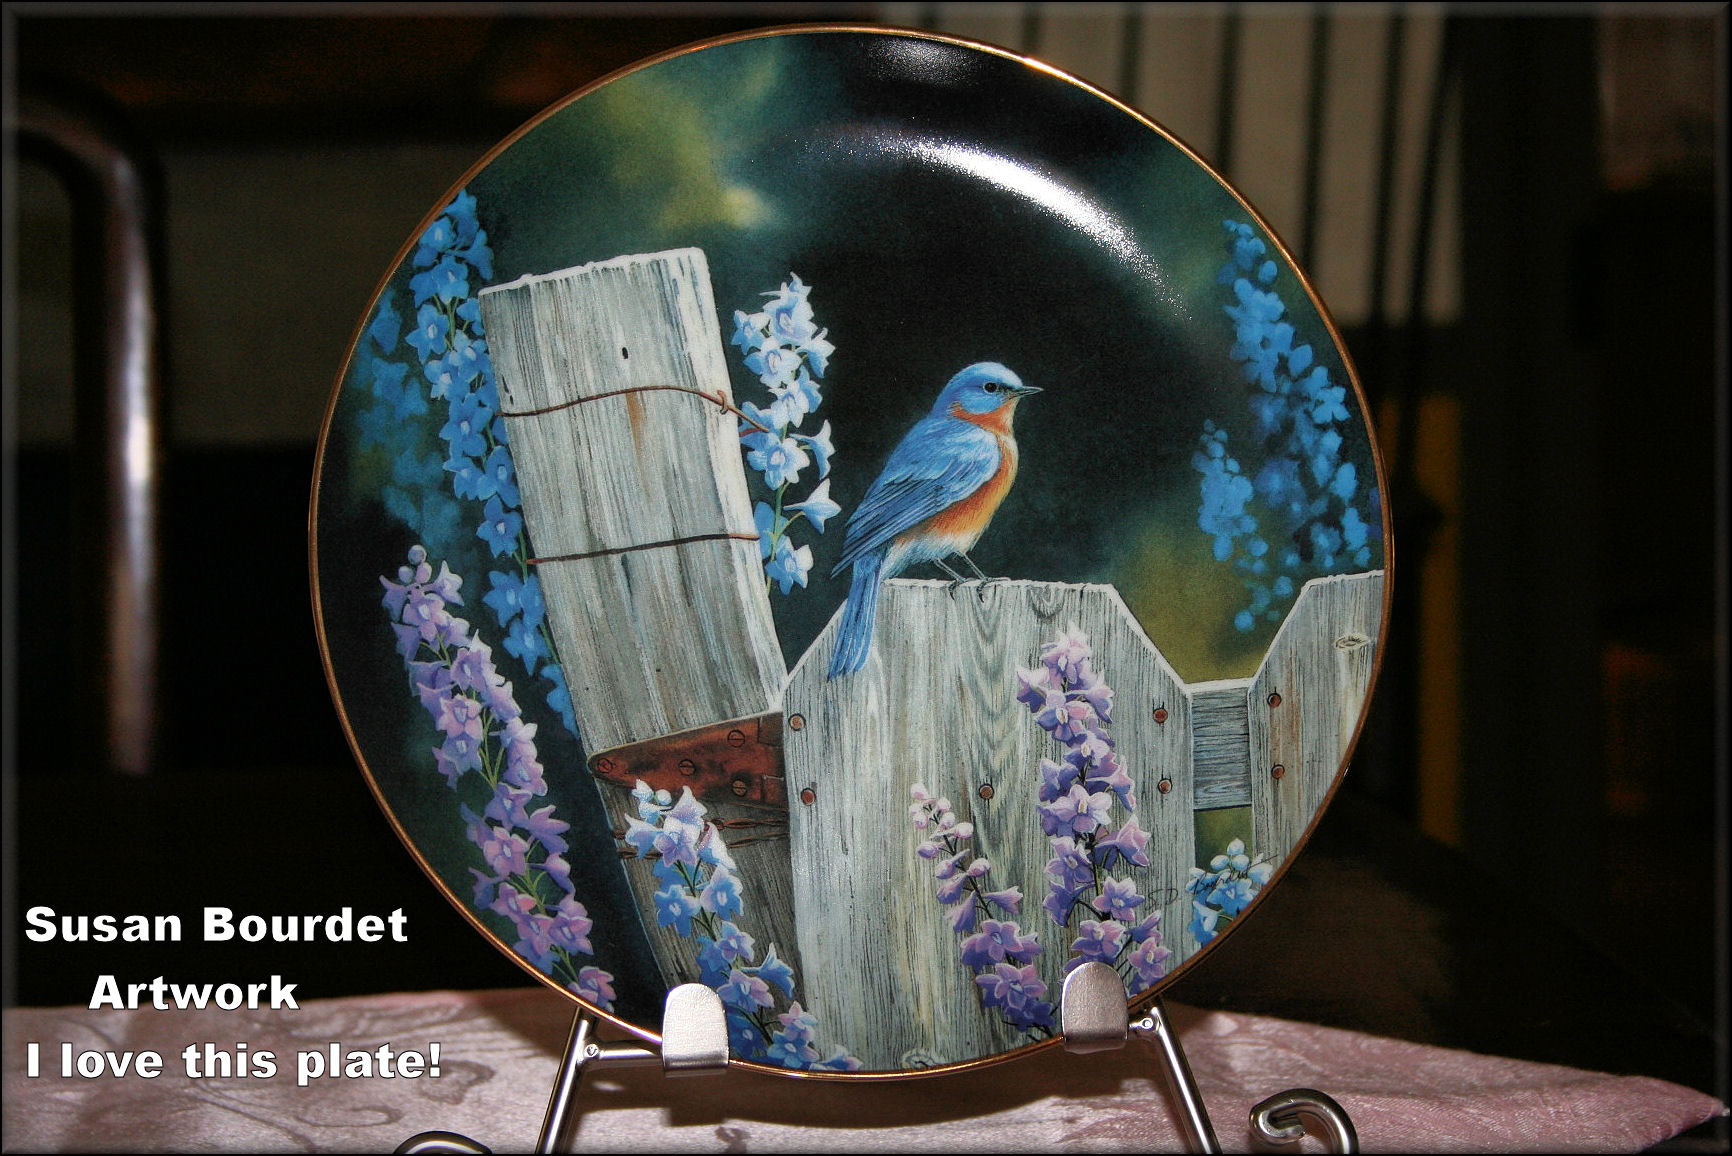 I absolutely love this artist. This plate graces our guest room which we call, The Blue Room. Once you get a bluebird trail, you'll be hooked on the real birds and beautiful things all bluebirds, like this plate with bluebird artwork!